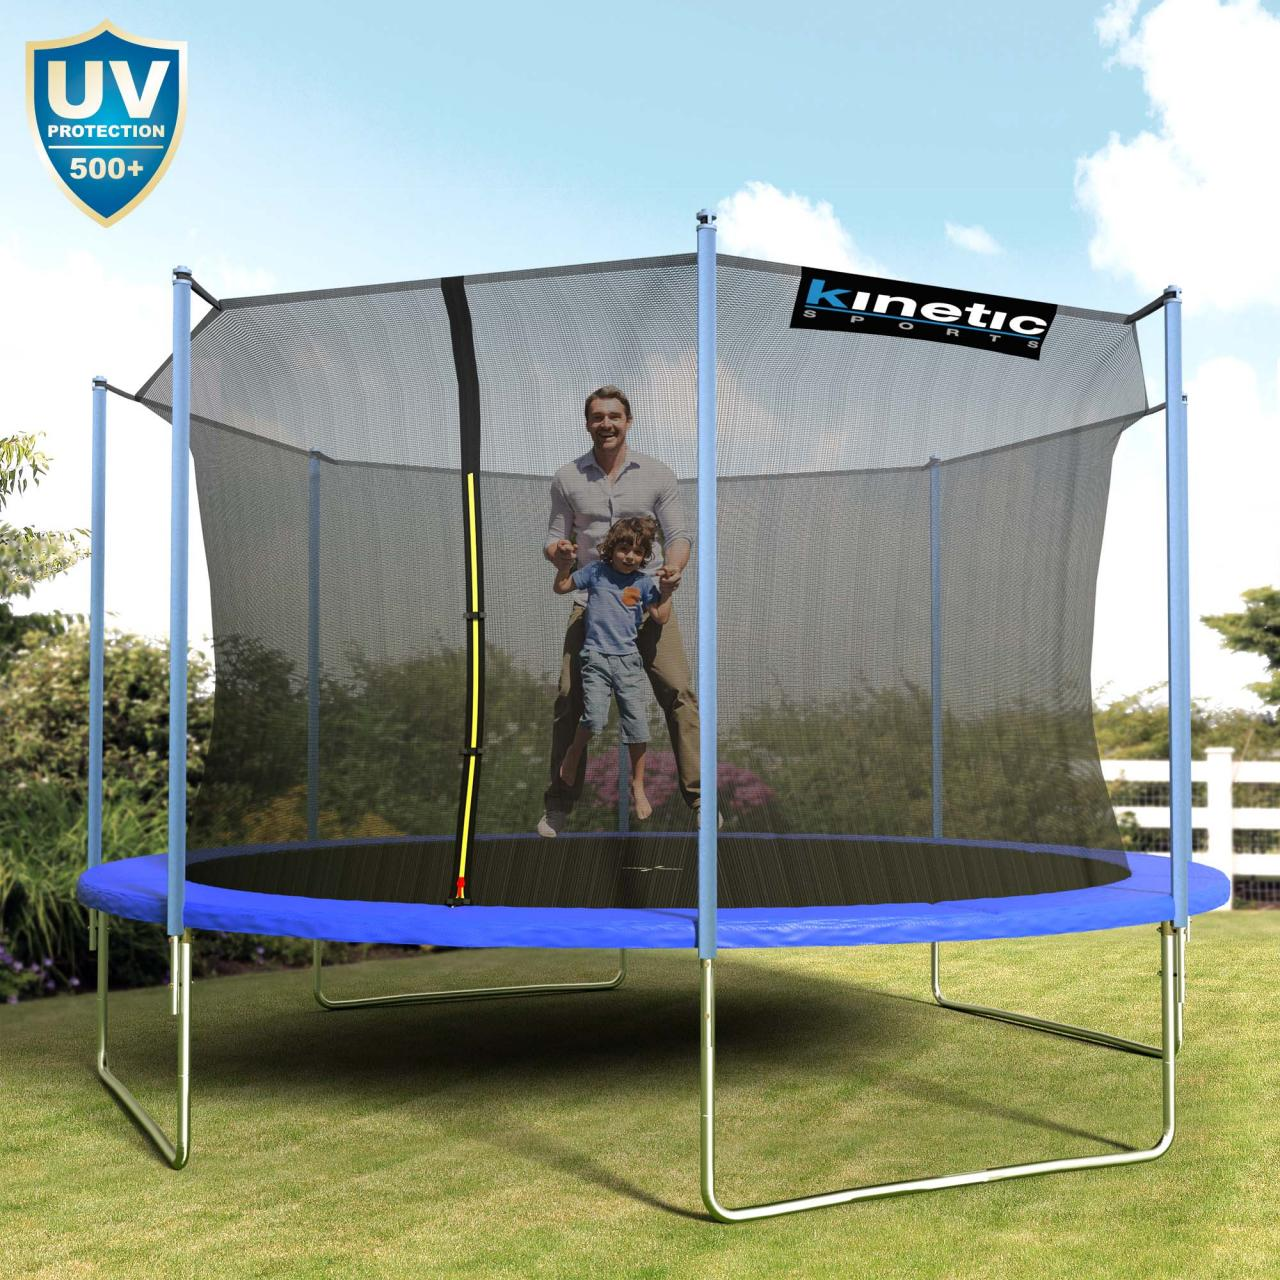 kinetic sports trampolin outdoor garten inkl netz sprungtuch randabdeckung set. Black Bedroom Furniture Sets. Home Design Ideas